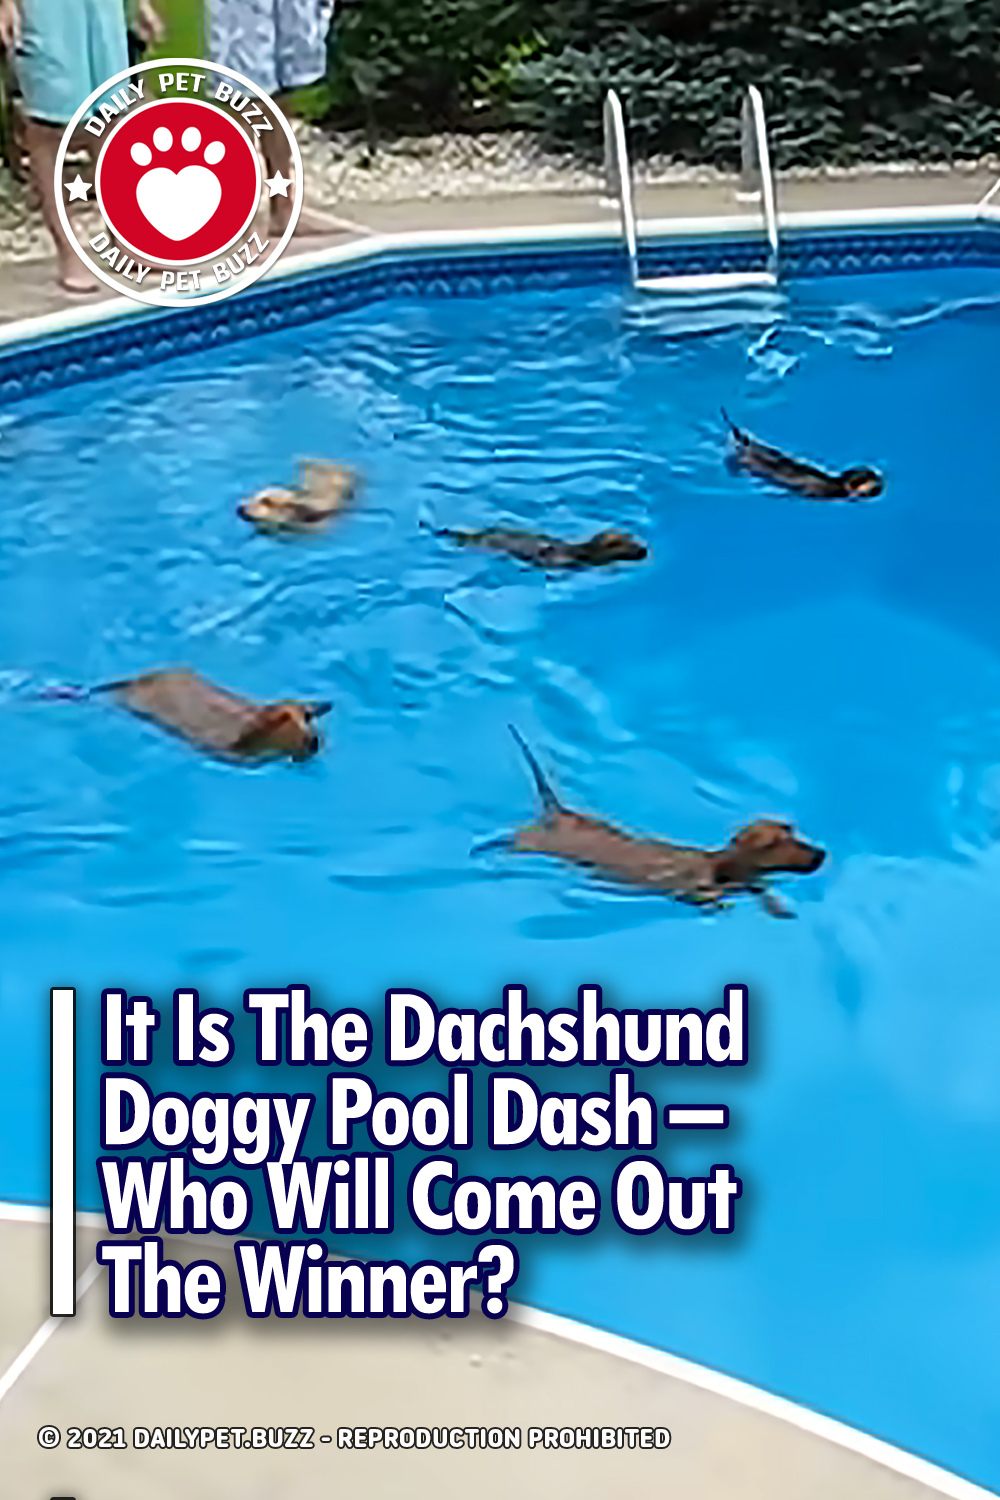 It Is The Dachshund Doggy Pool Dash – Who Will Come Out The Winner?